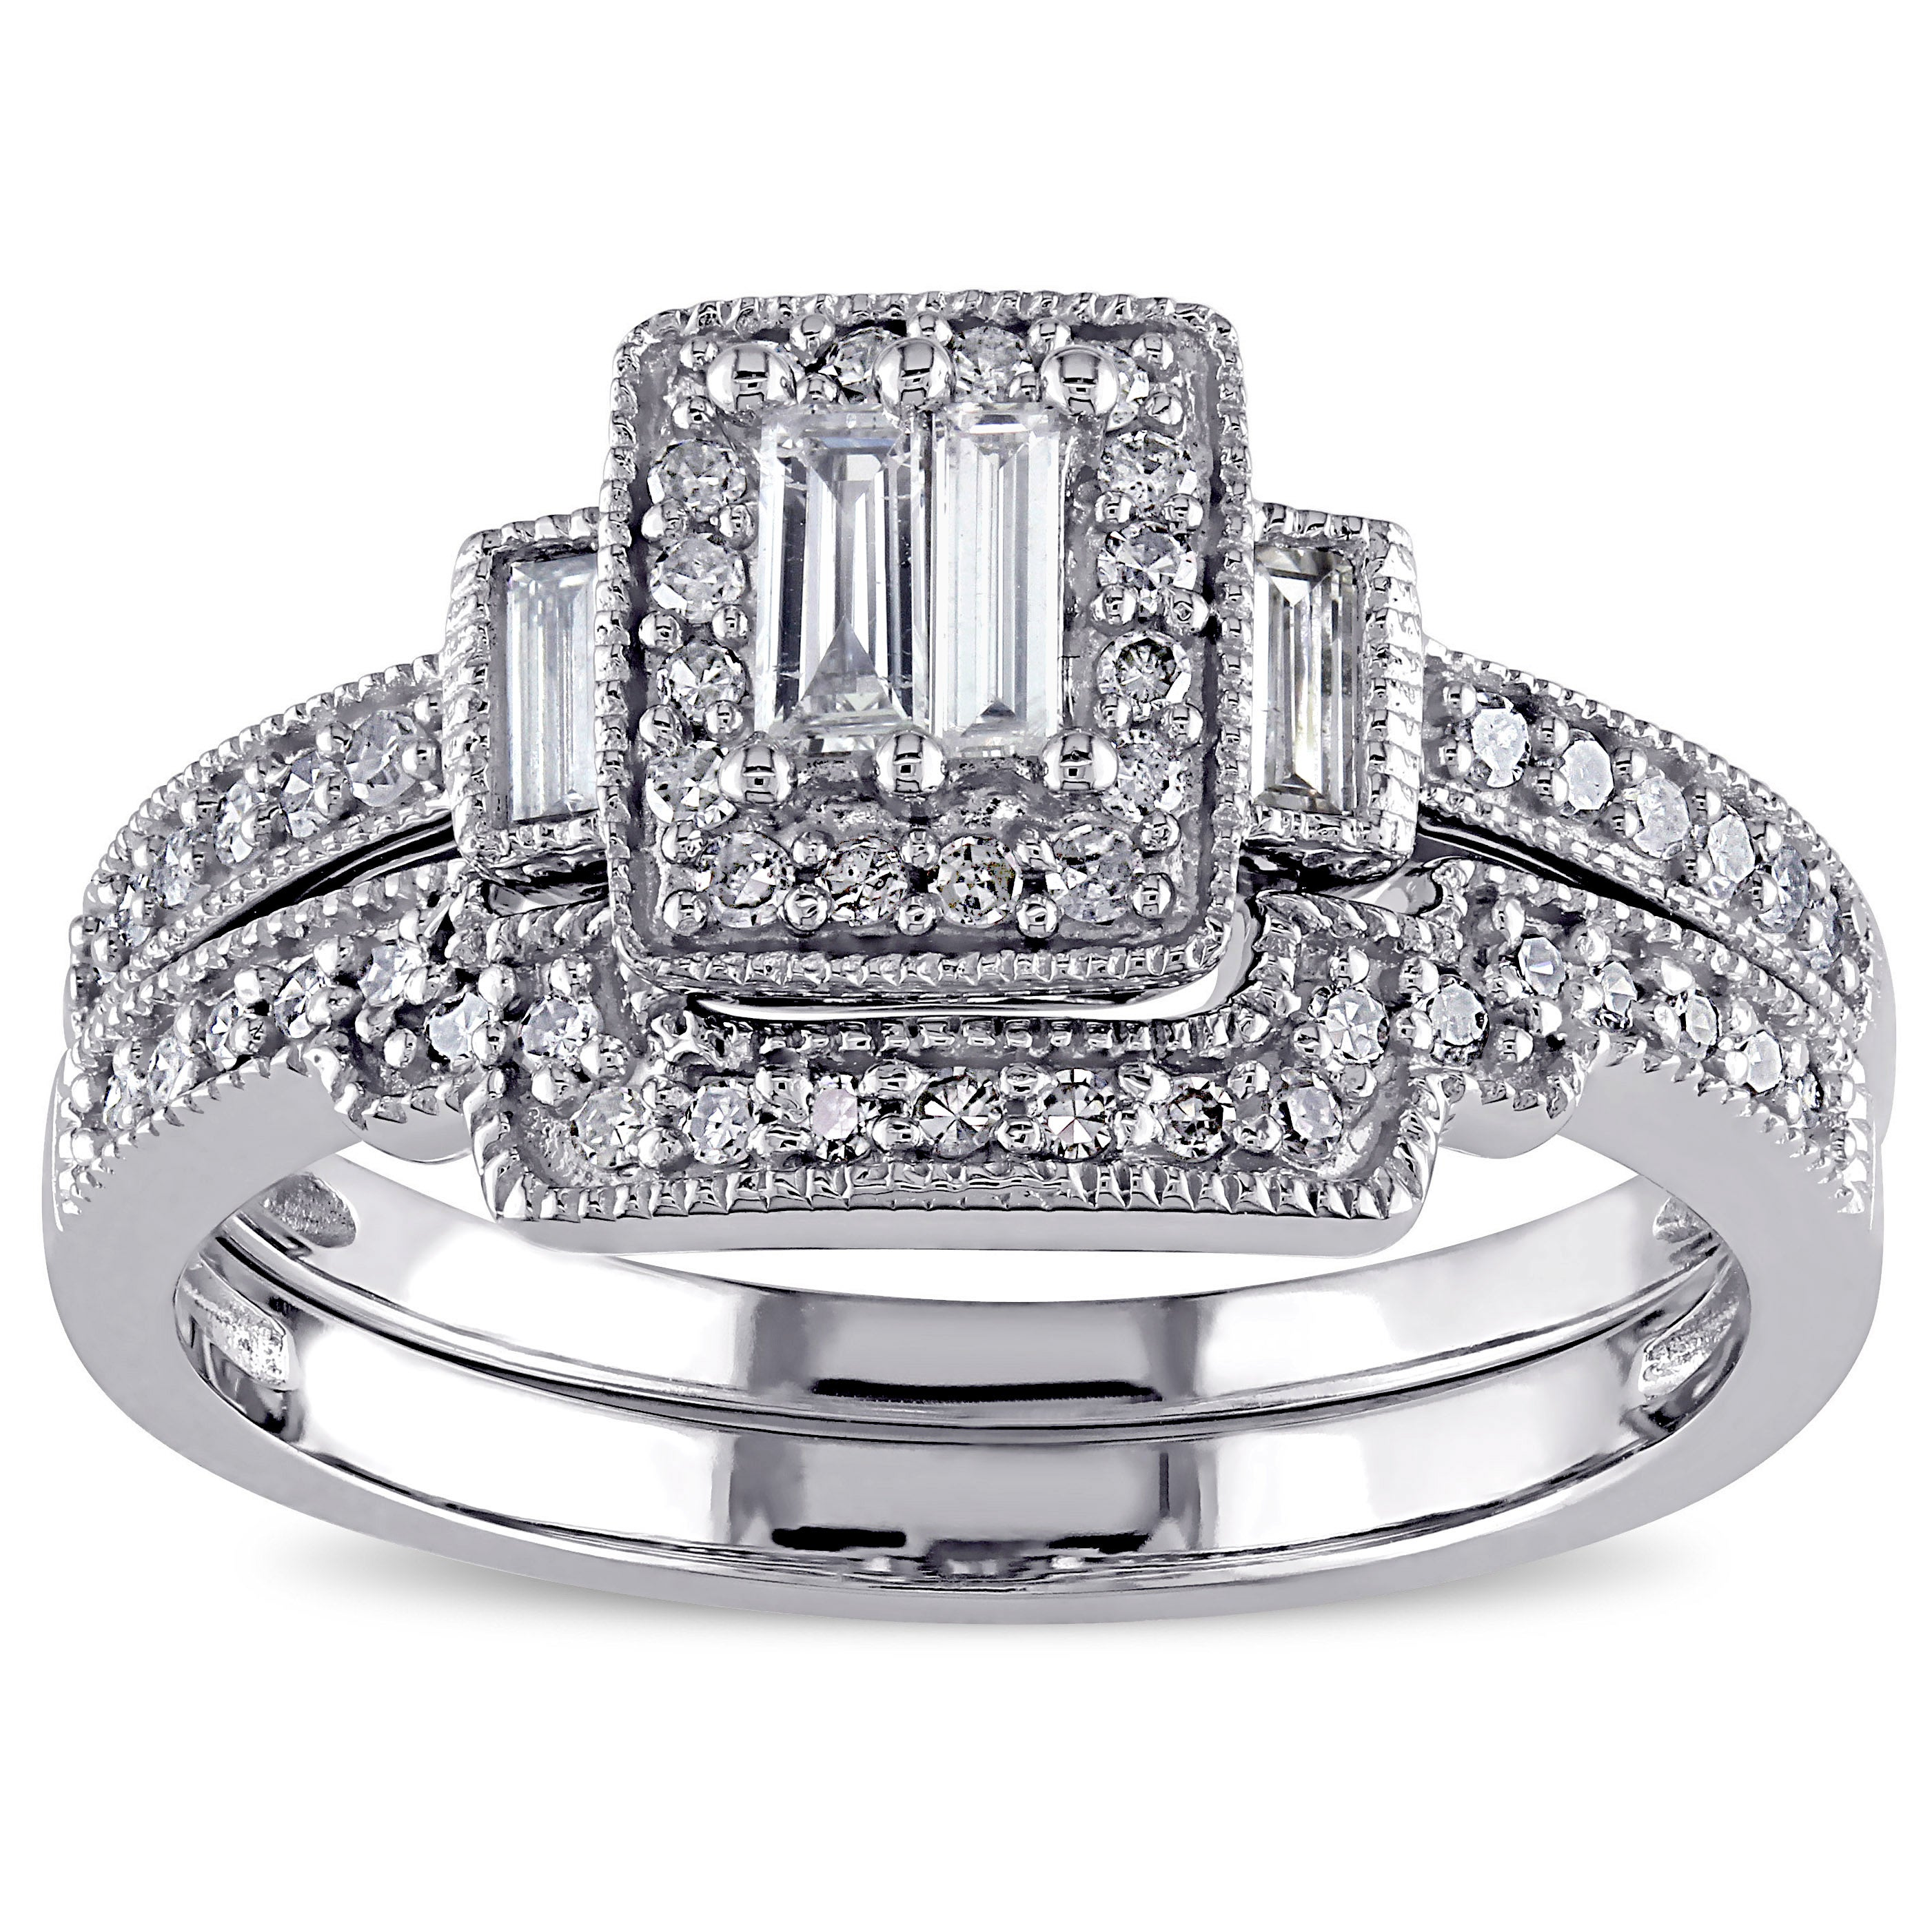 Miadora 10k White Gold 2/5ct TDW Diamond Bridal Ring Set (G-H, I1-I2)